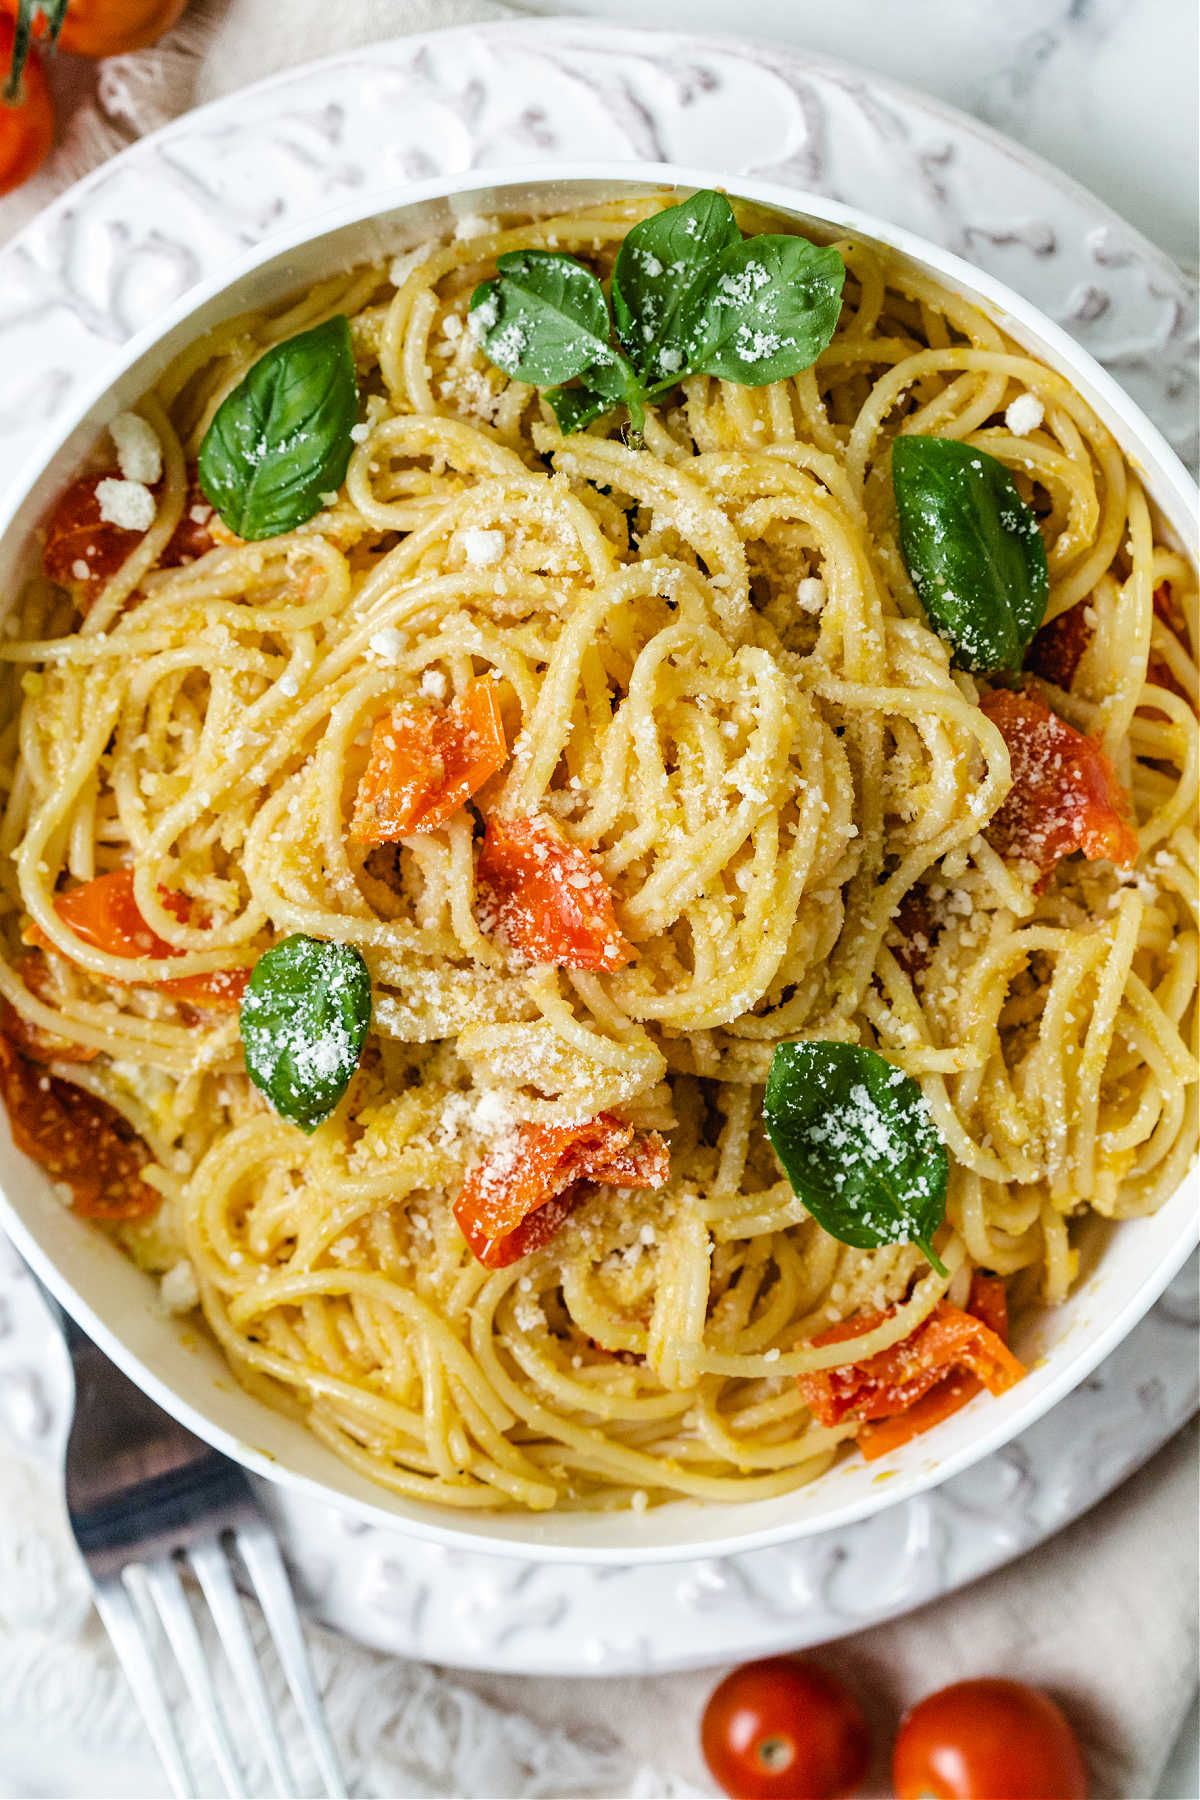 a bowl of pasta with roasted cherry tomato pasta sauce and fresh basil leaves.